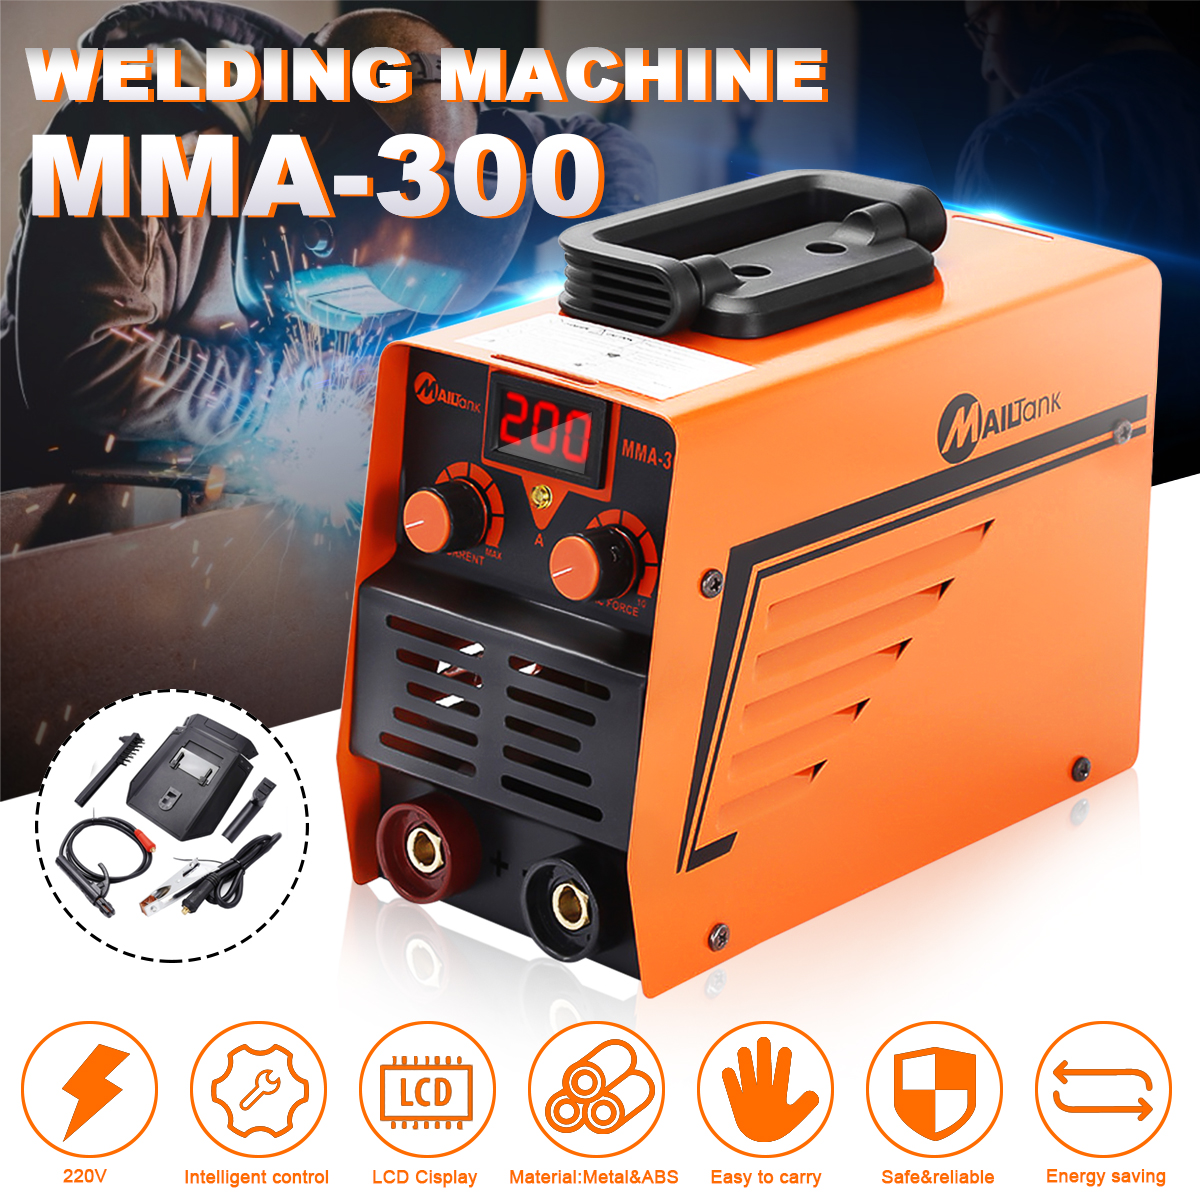 Portable MMA Welding Machine Inverter Electric Welding Tools Digital Display Current Regulation 220V MMA-300